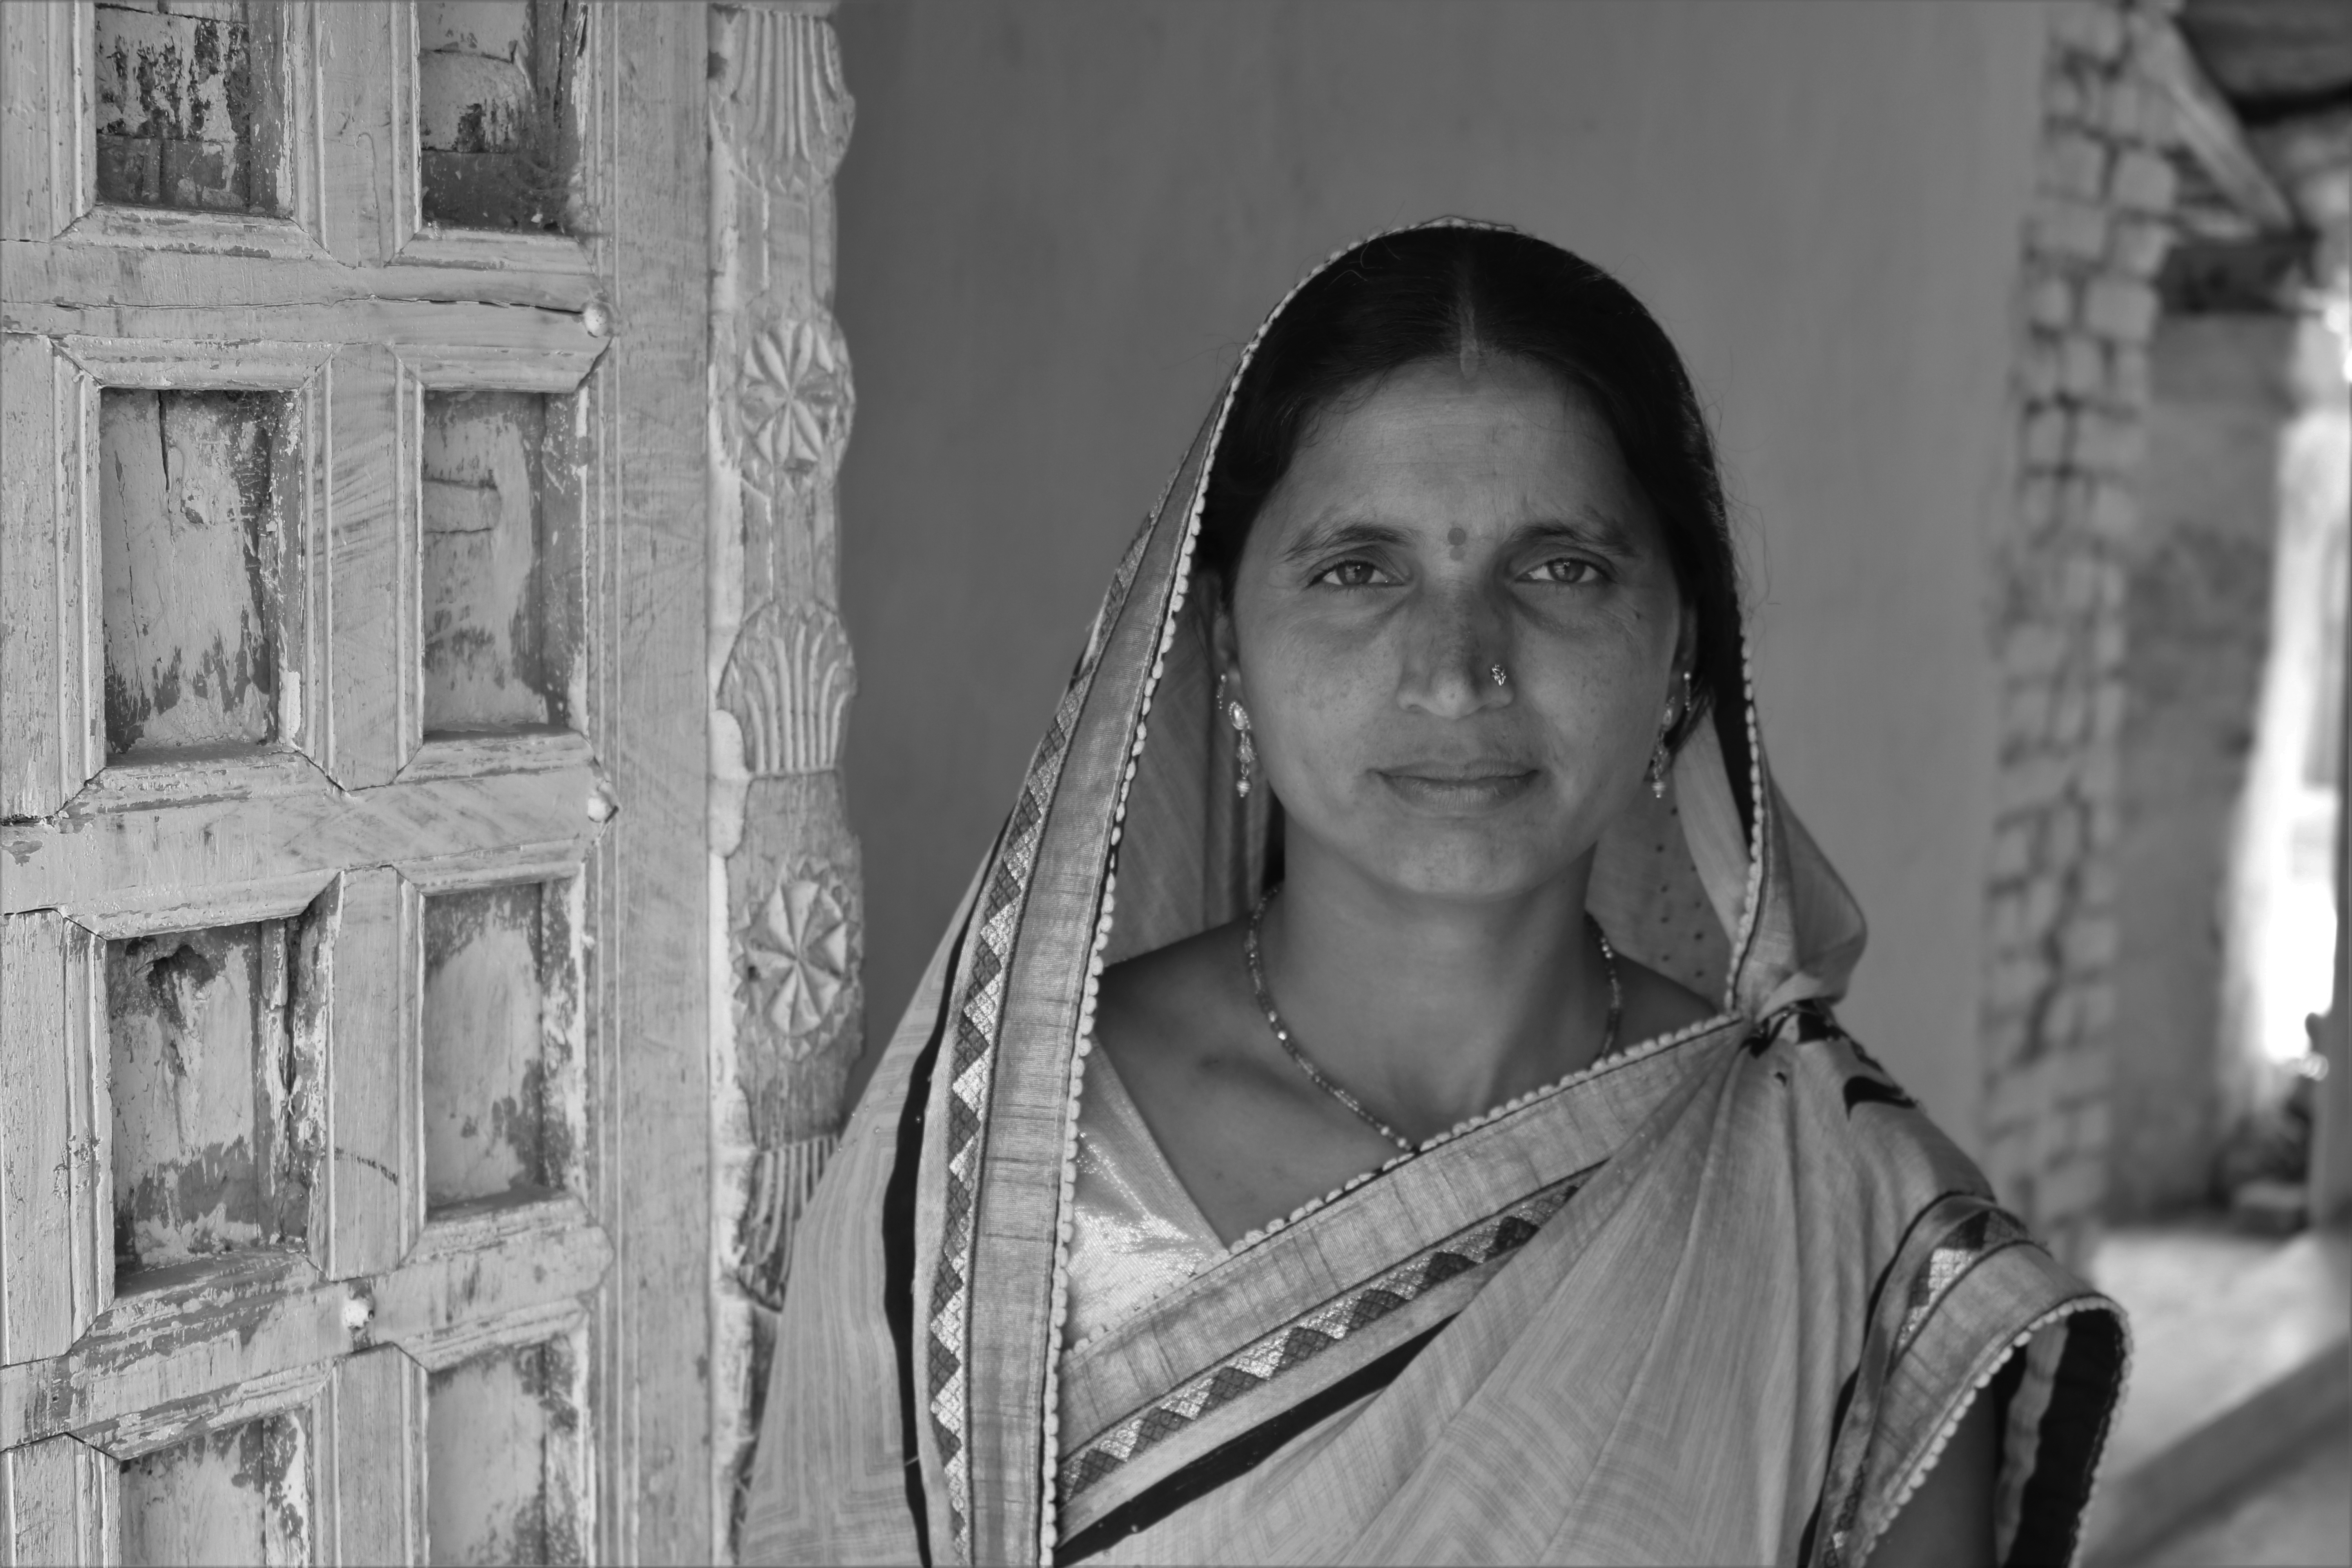 As a young bride, Meena experienced abuse, suffering and discrimination at the hands of her husband's family.